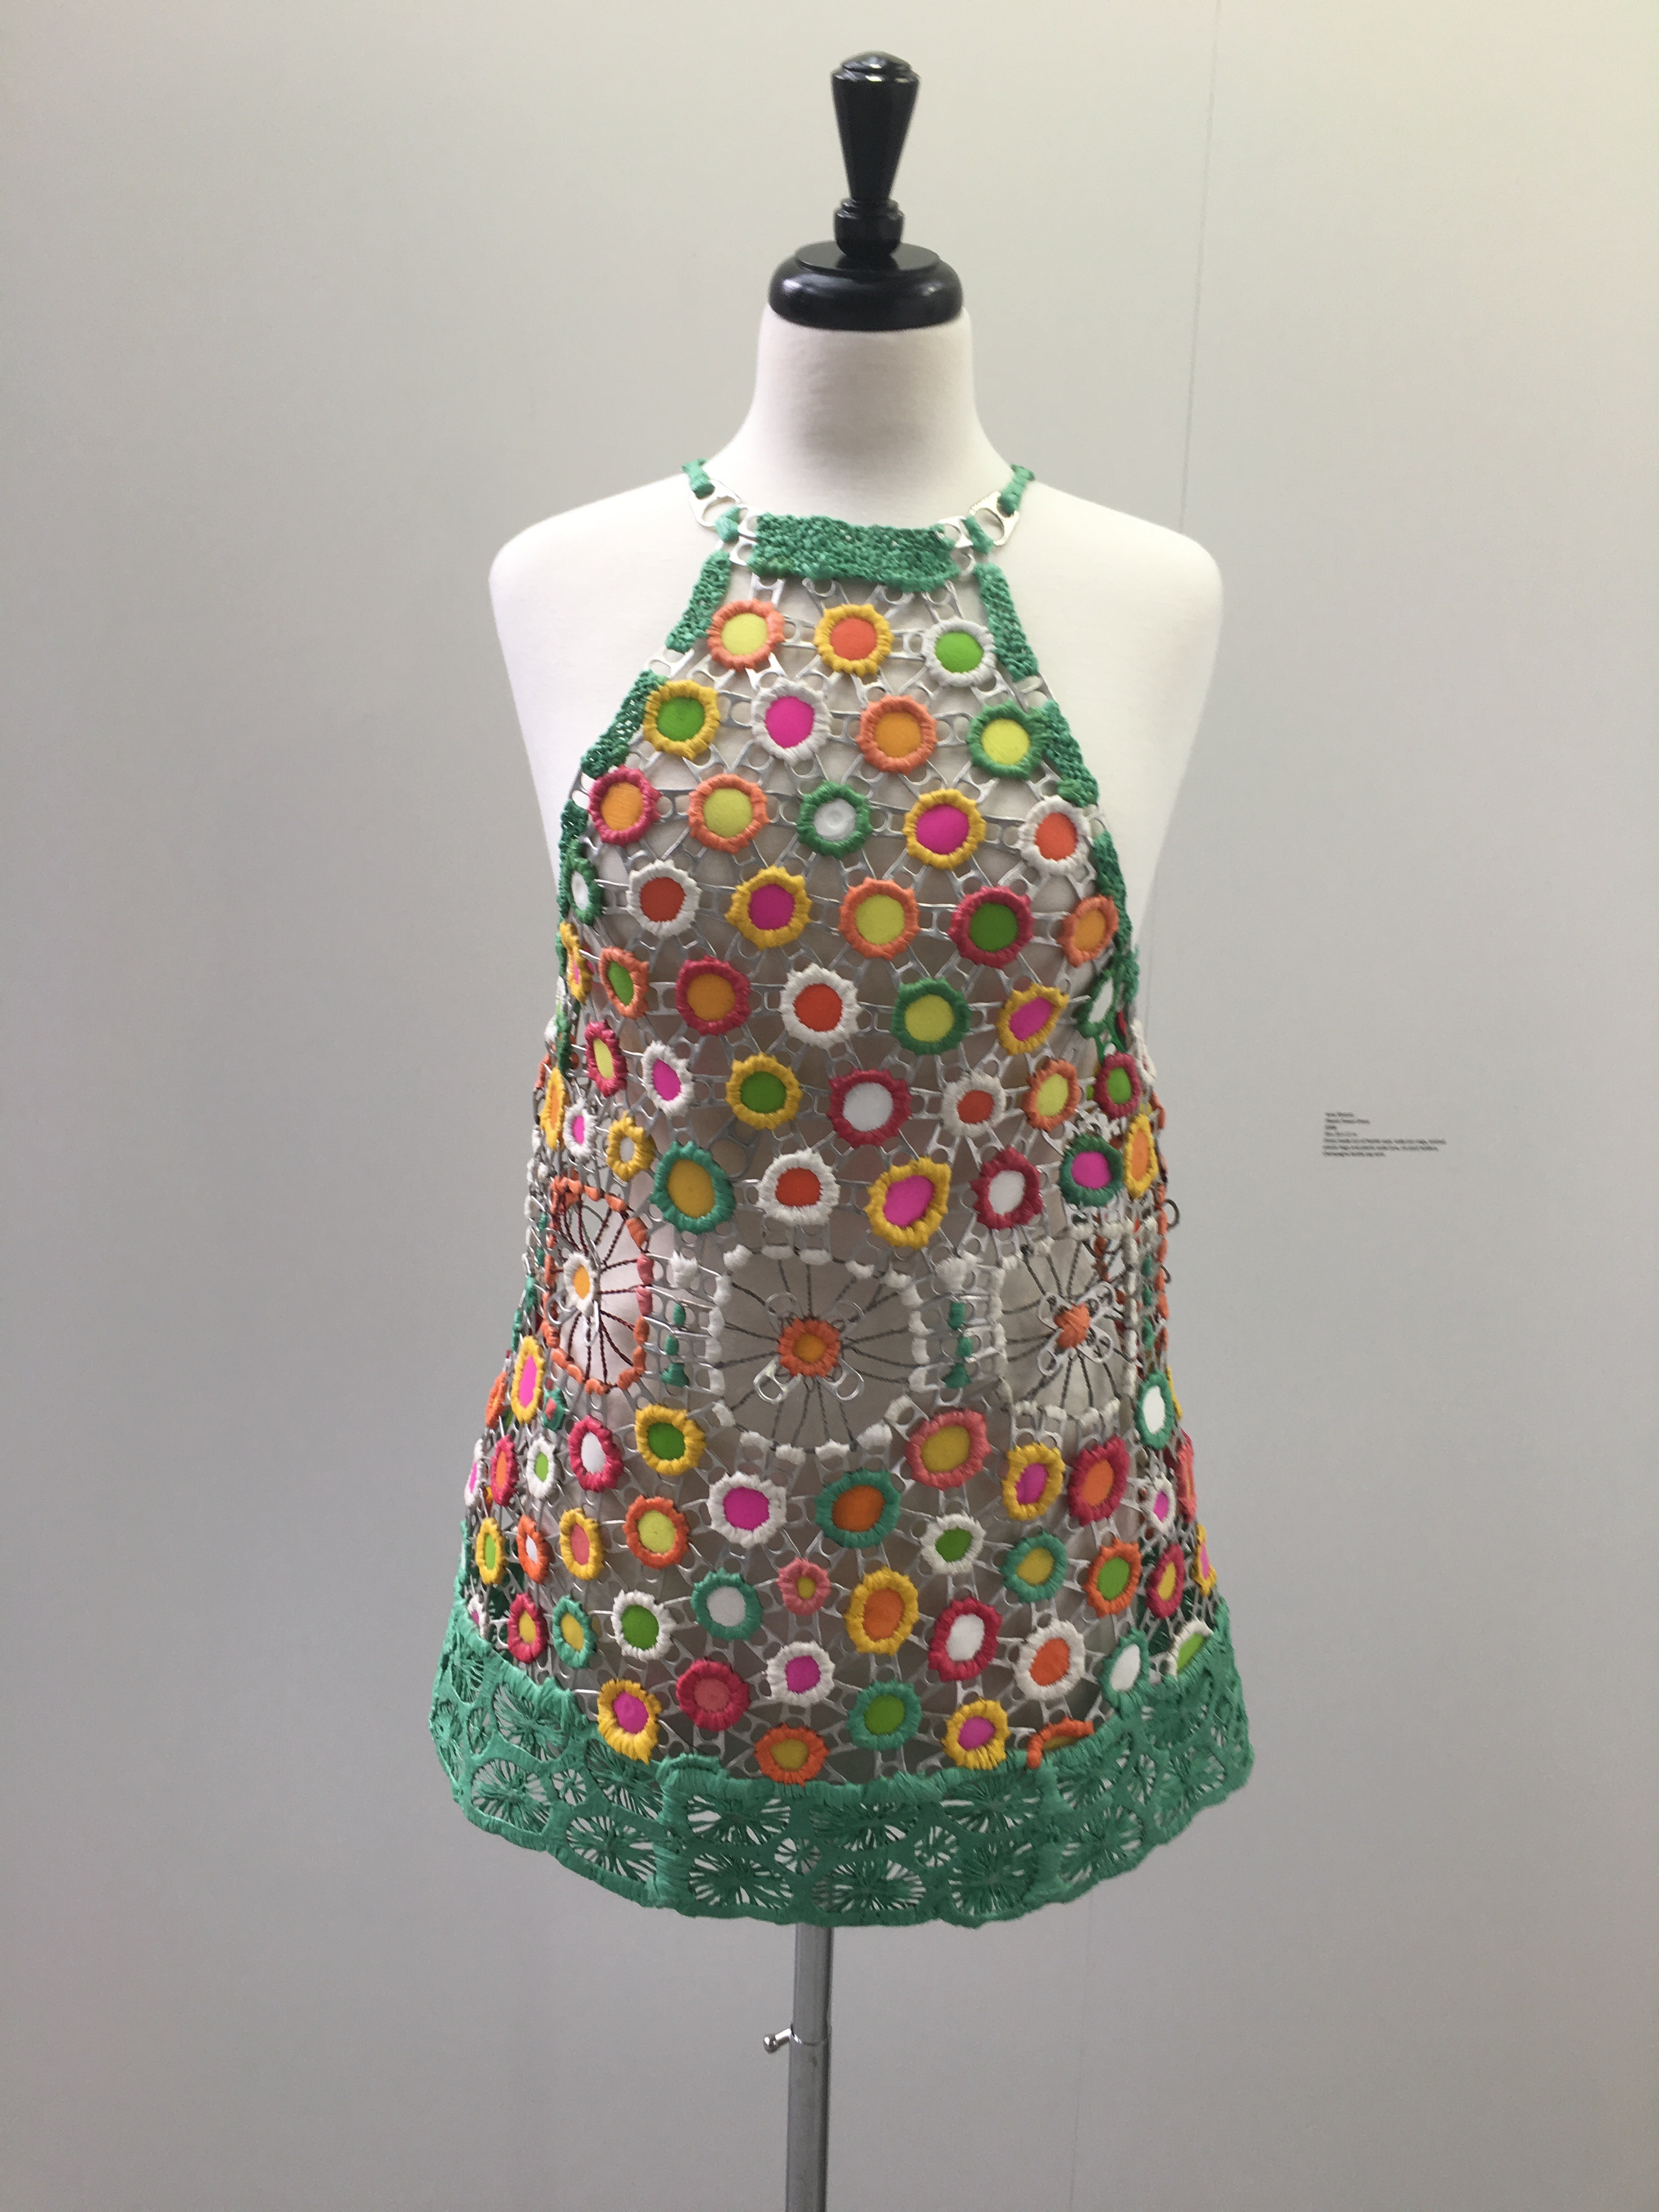 plastic power dress 2008 made of bottle caps soda can rings knitted plastic bags and soda cans six pack holders champagne bottle cap wire bottle cap furniture